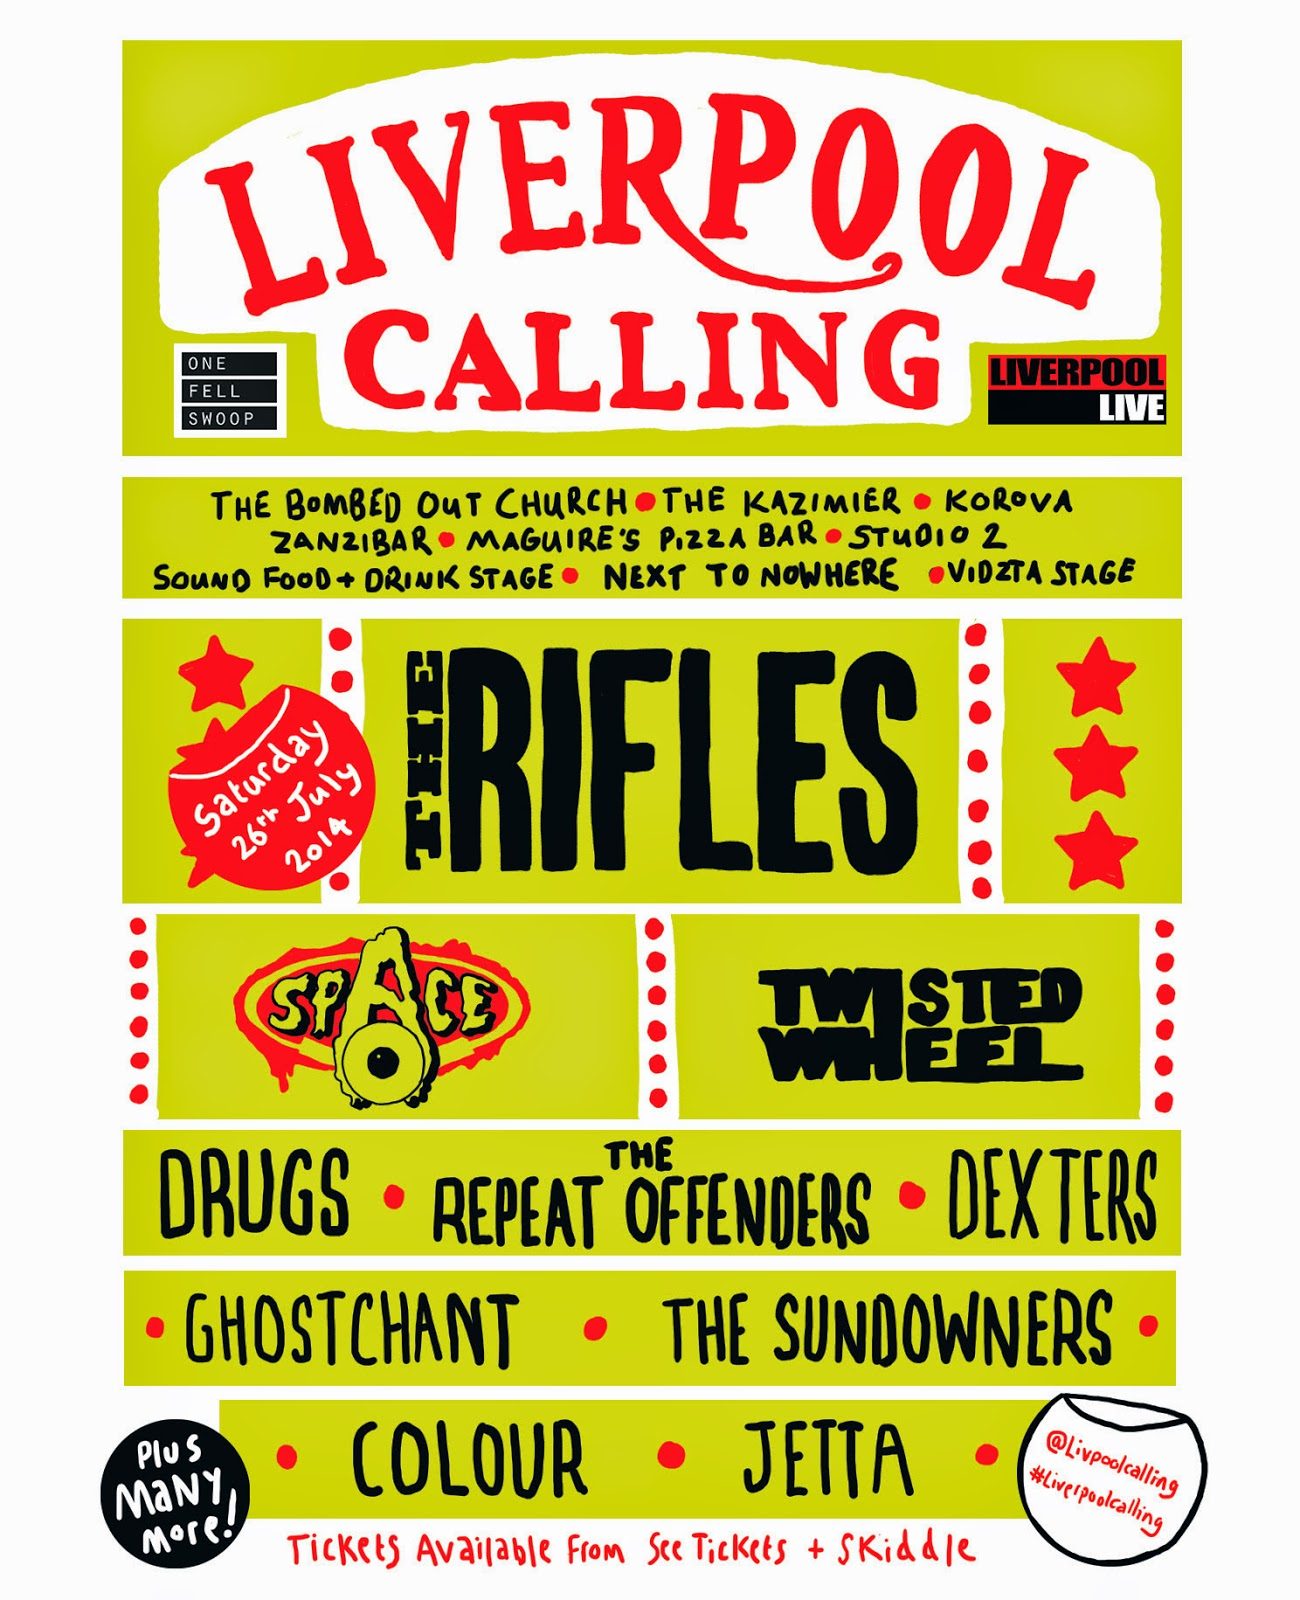 Liverpool calling 2014 - Bombed out church review